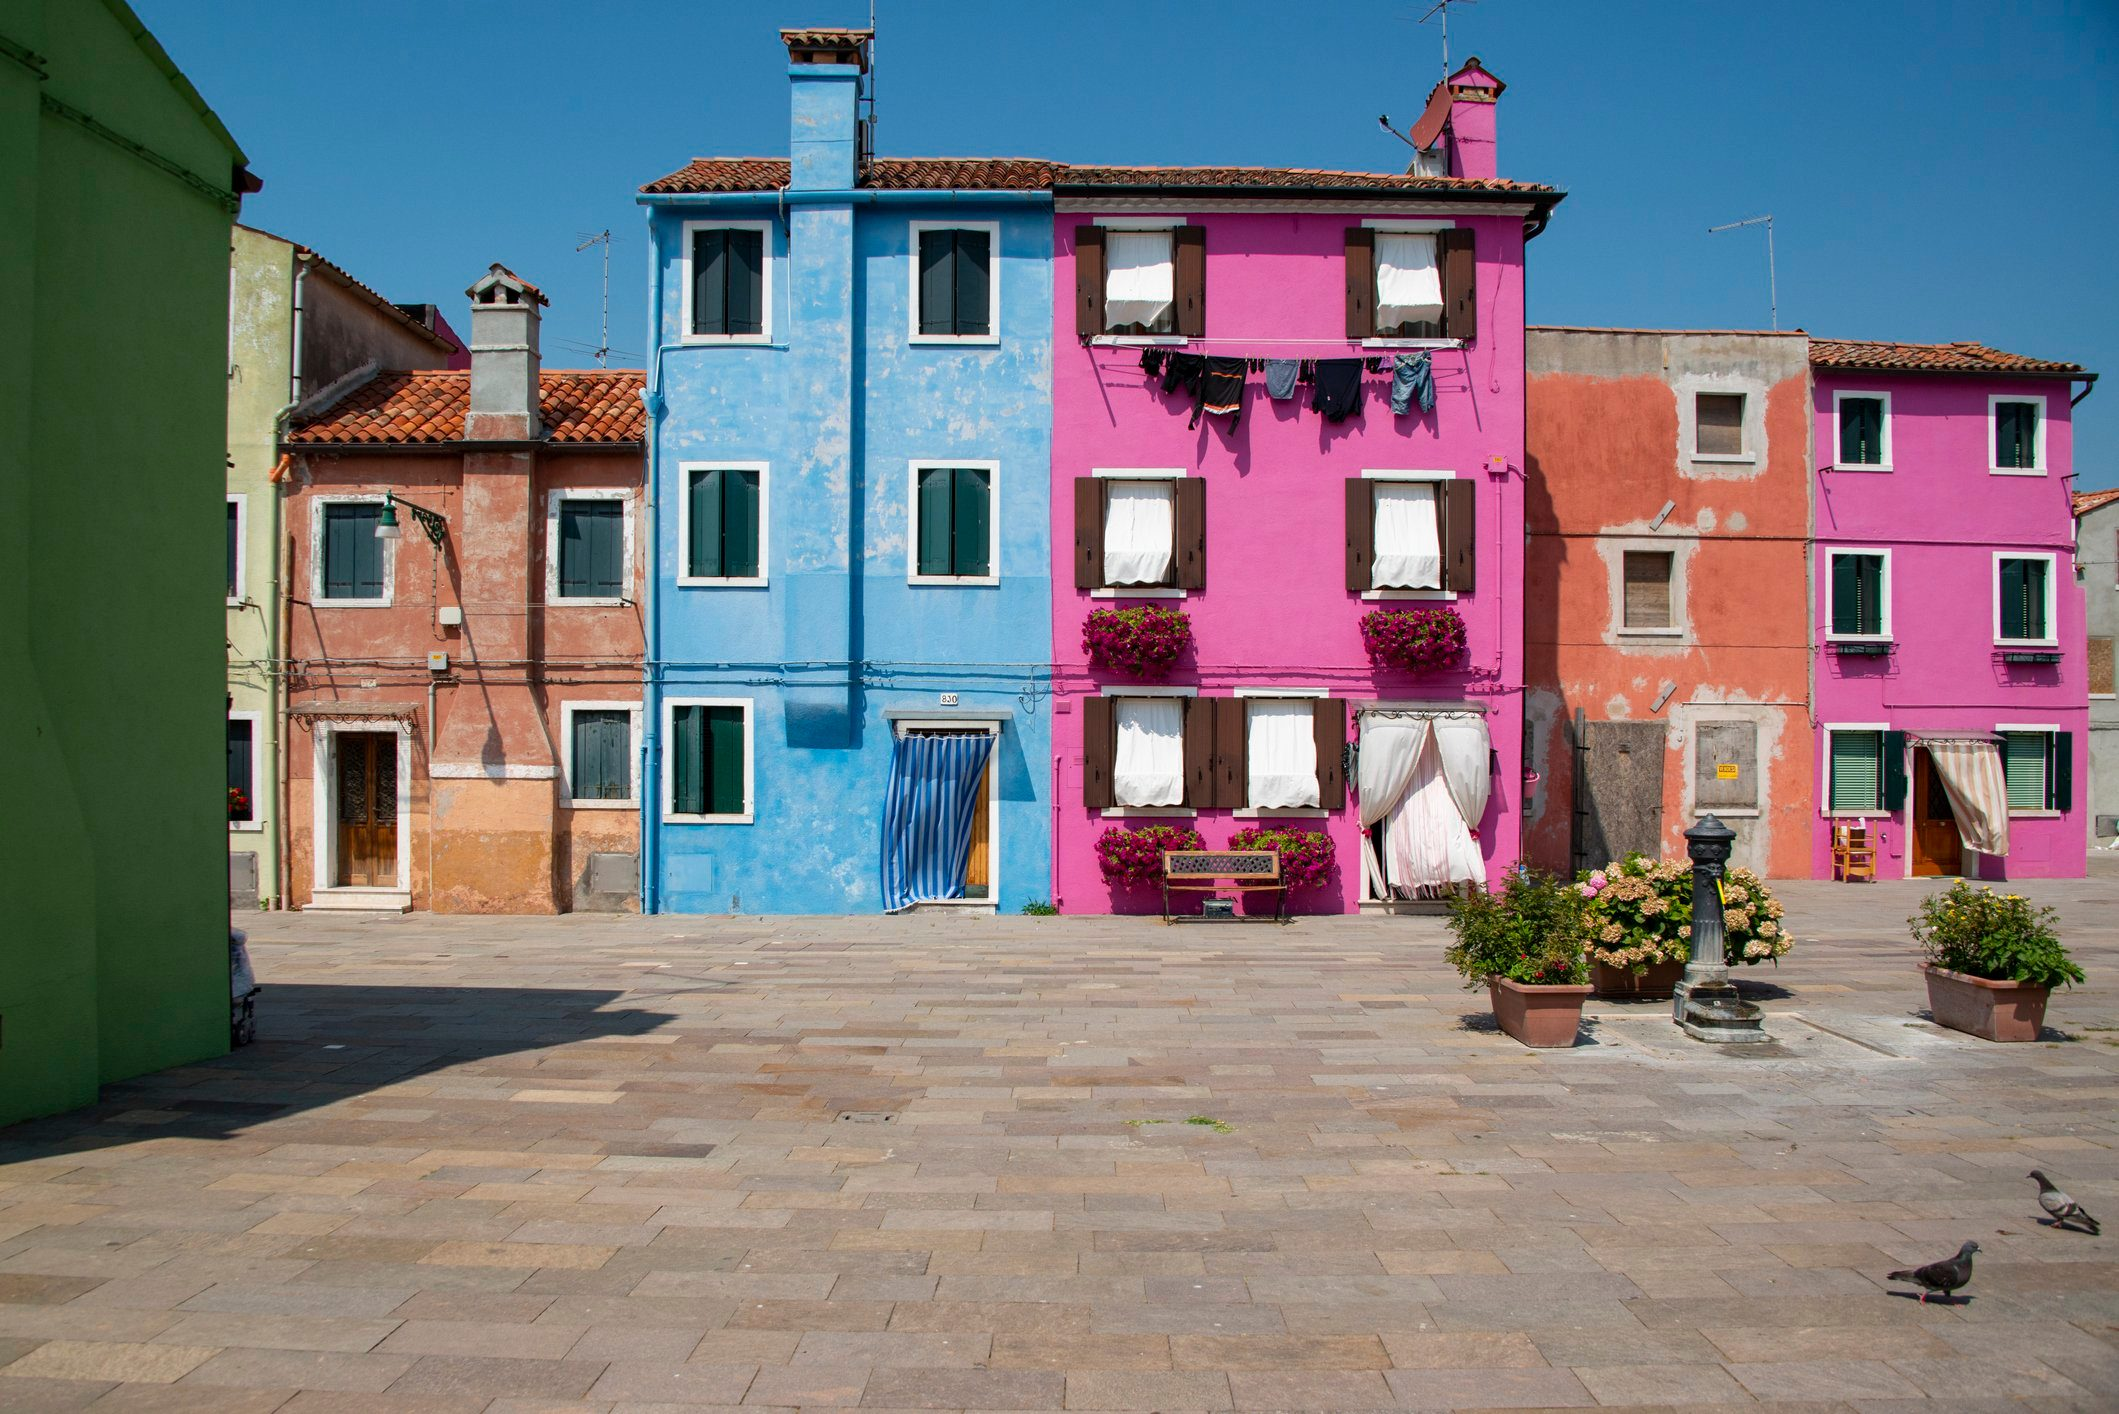 Colourful house walls in Burano, Venice, Italy